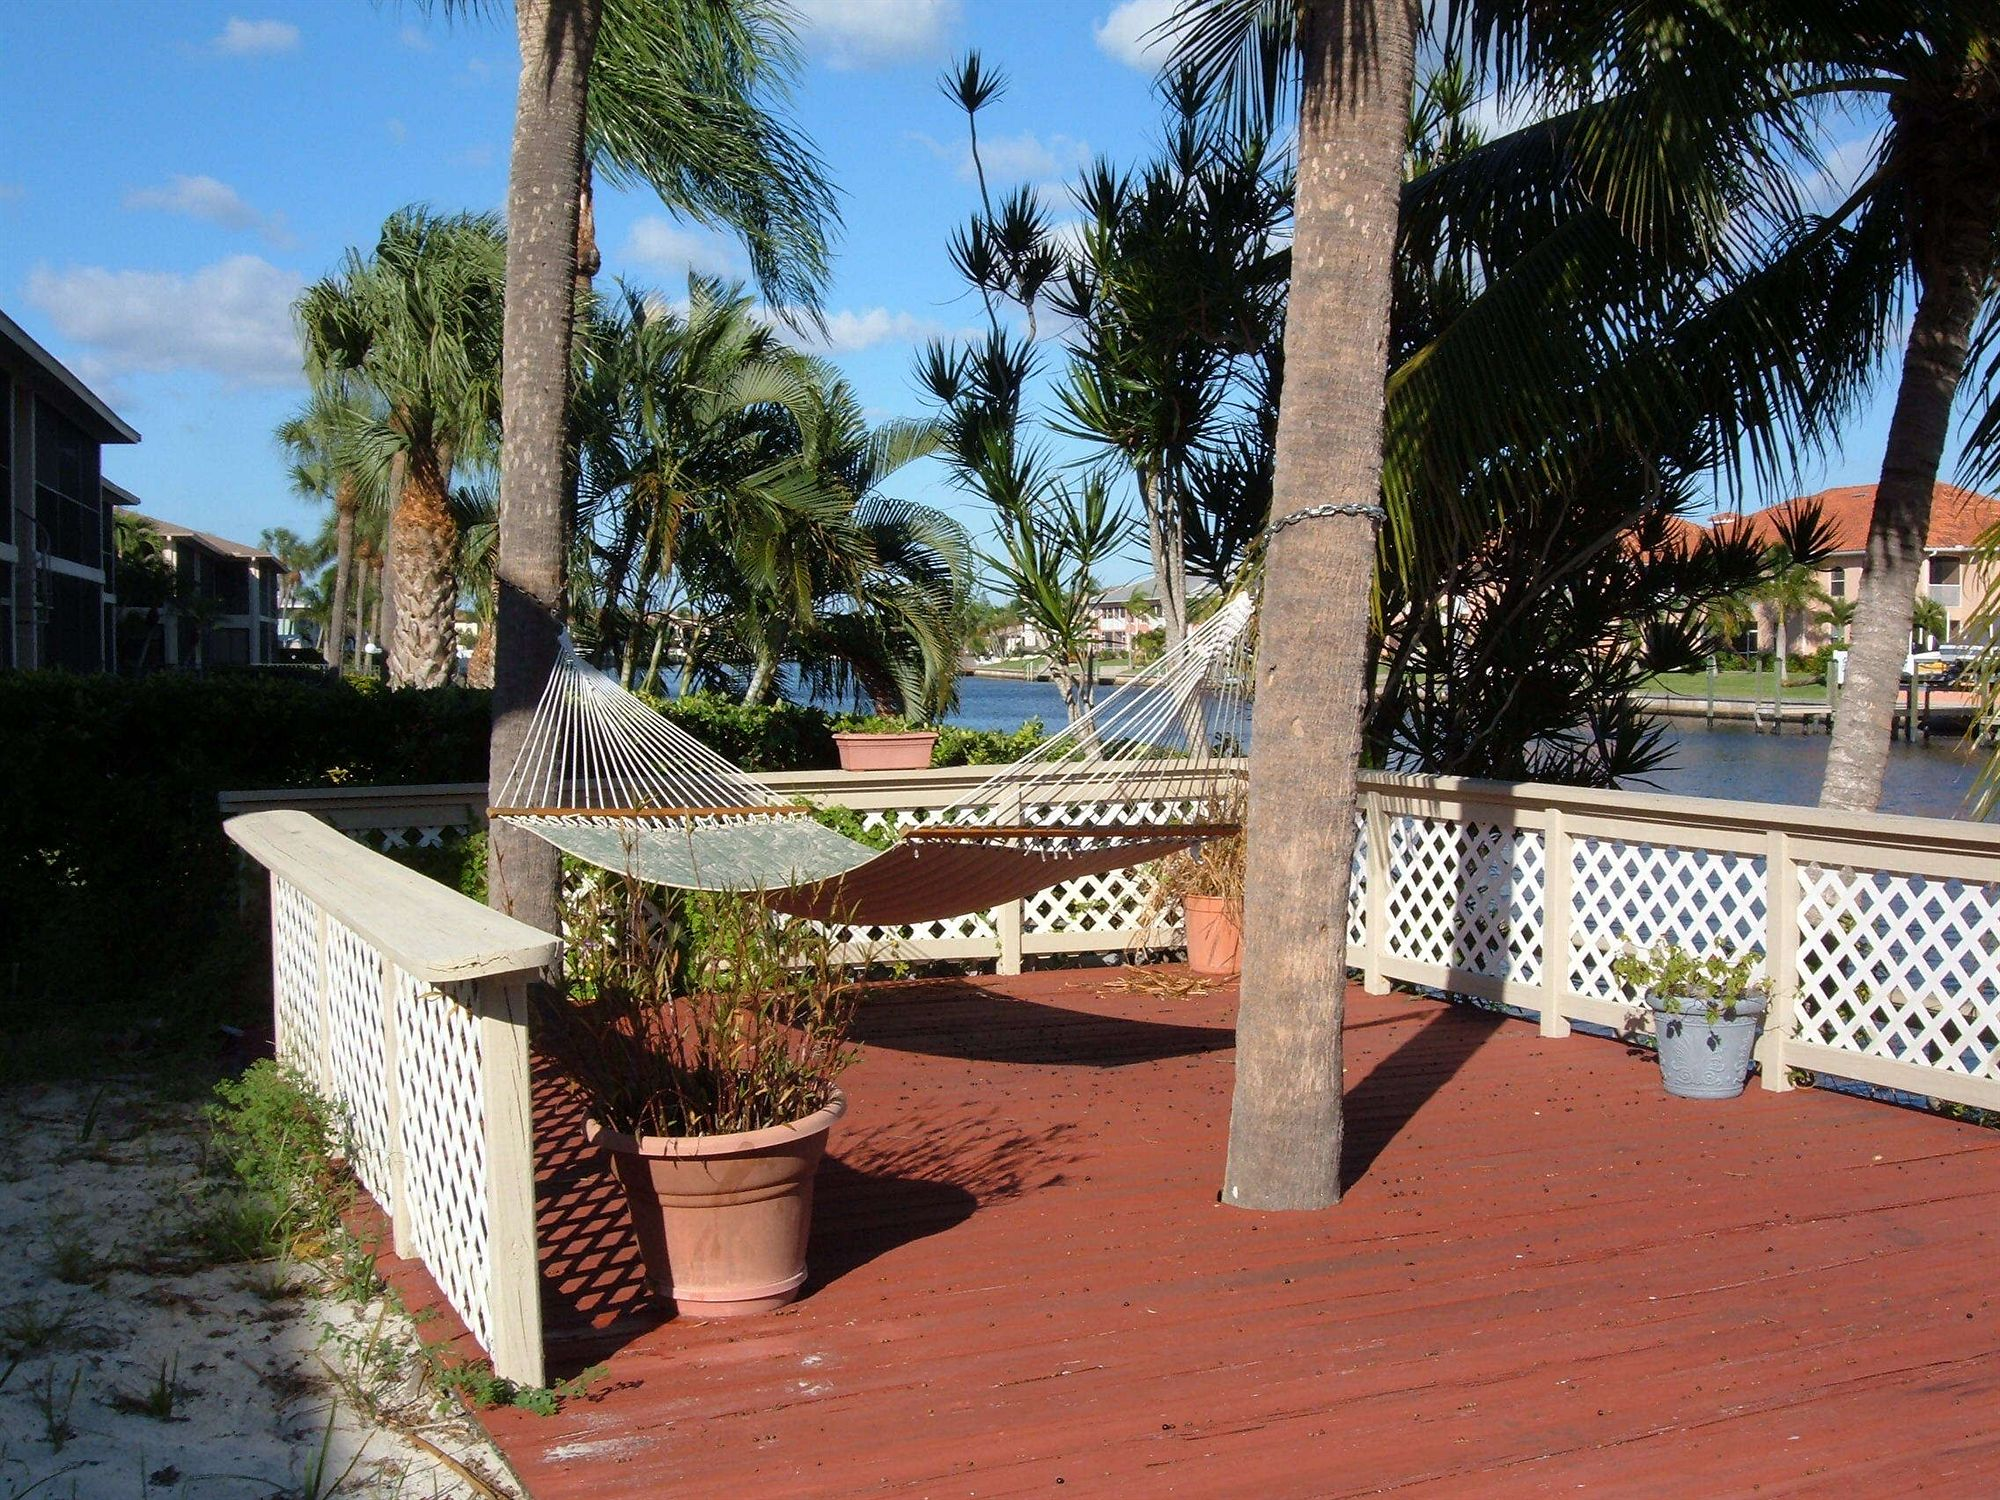 Hideaway Waterfront Resort & Hotel in Cape Coral, FL